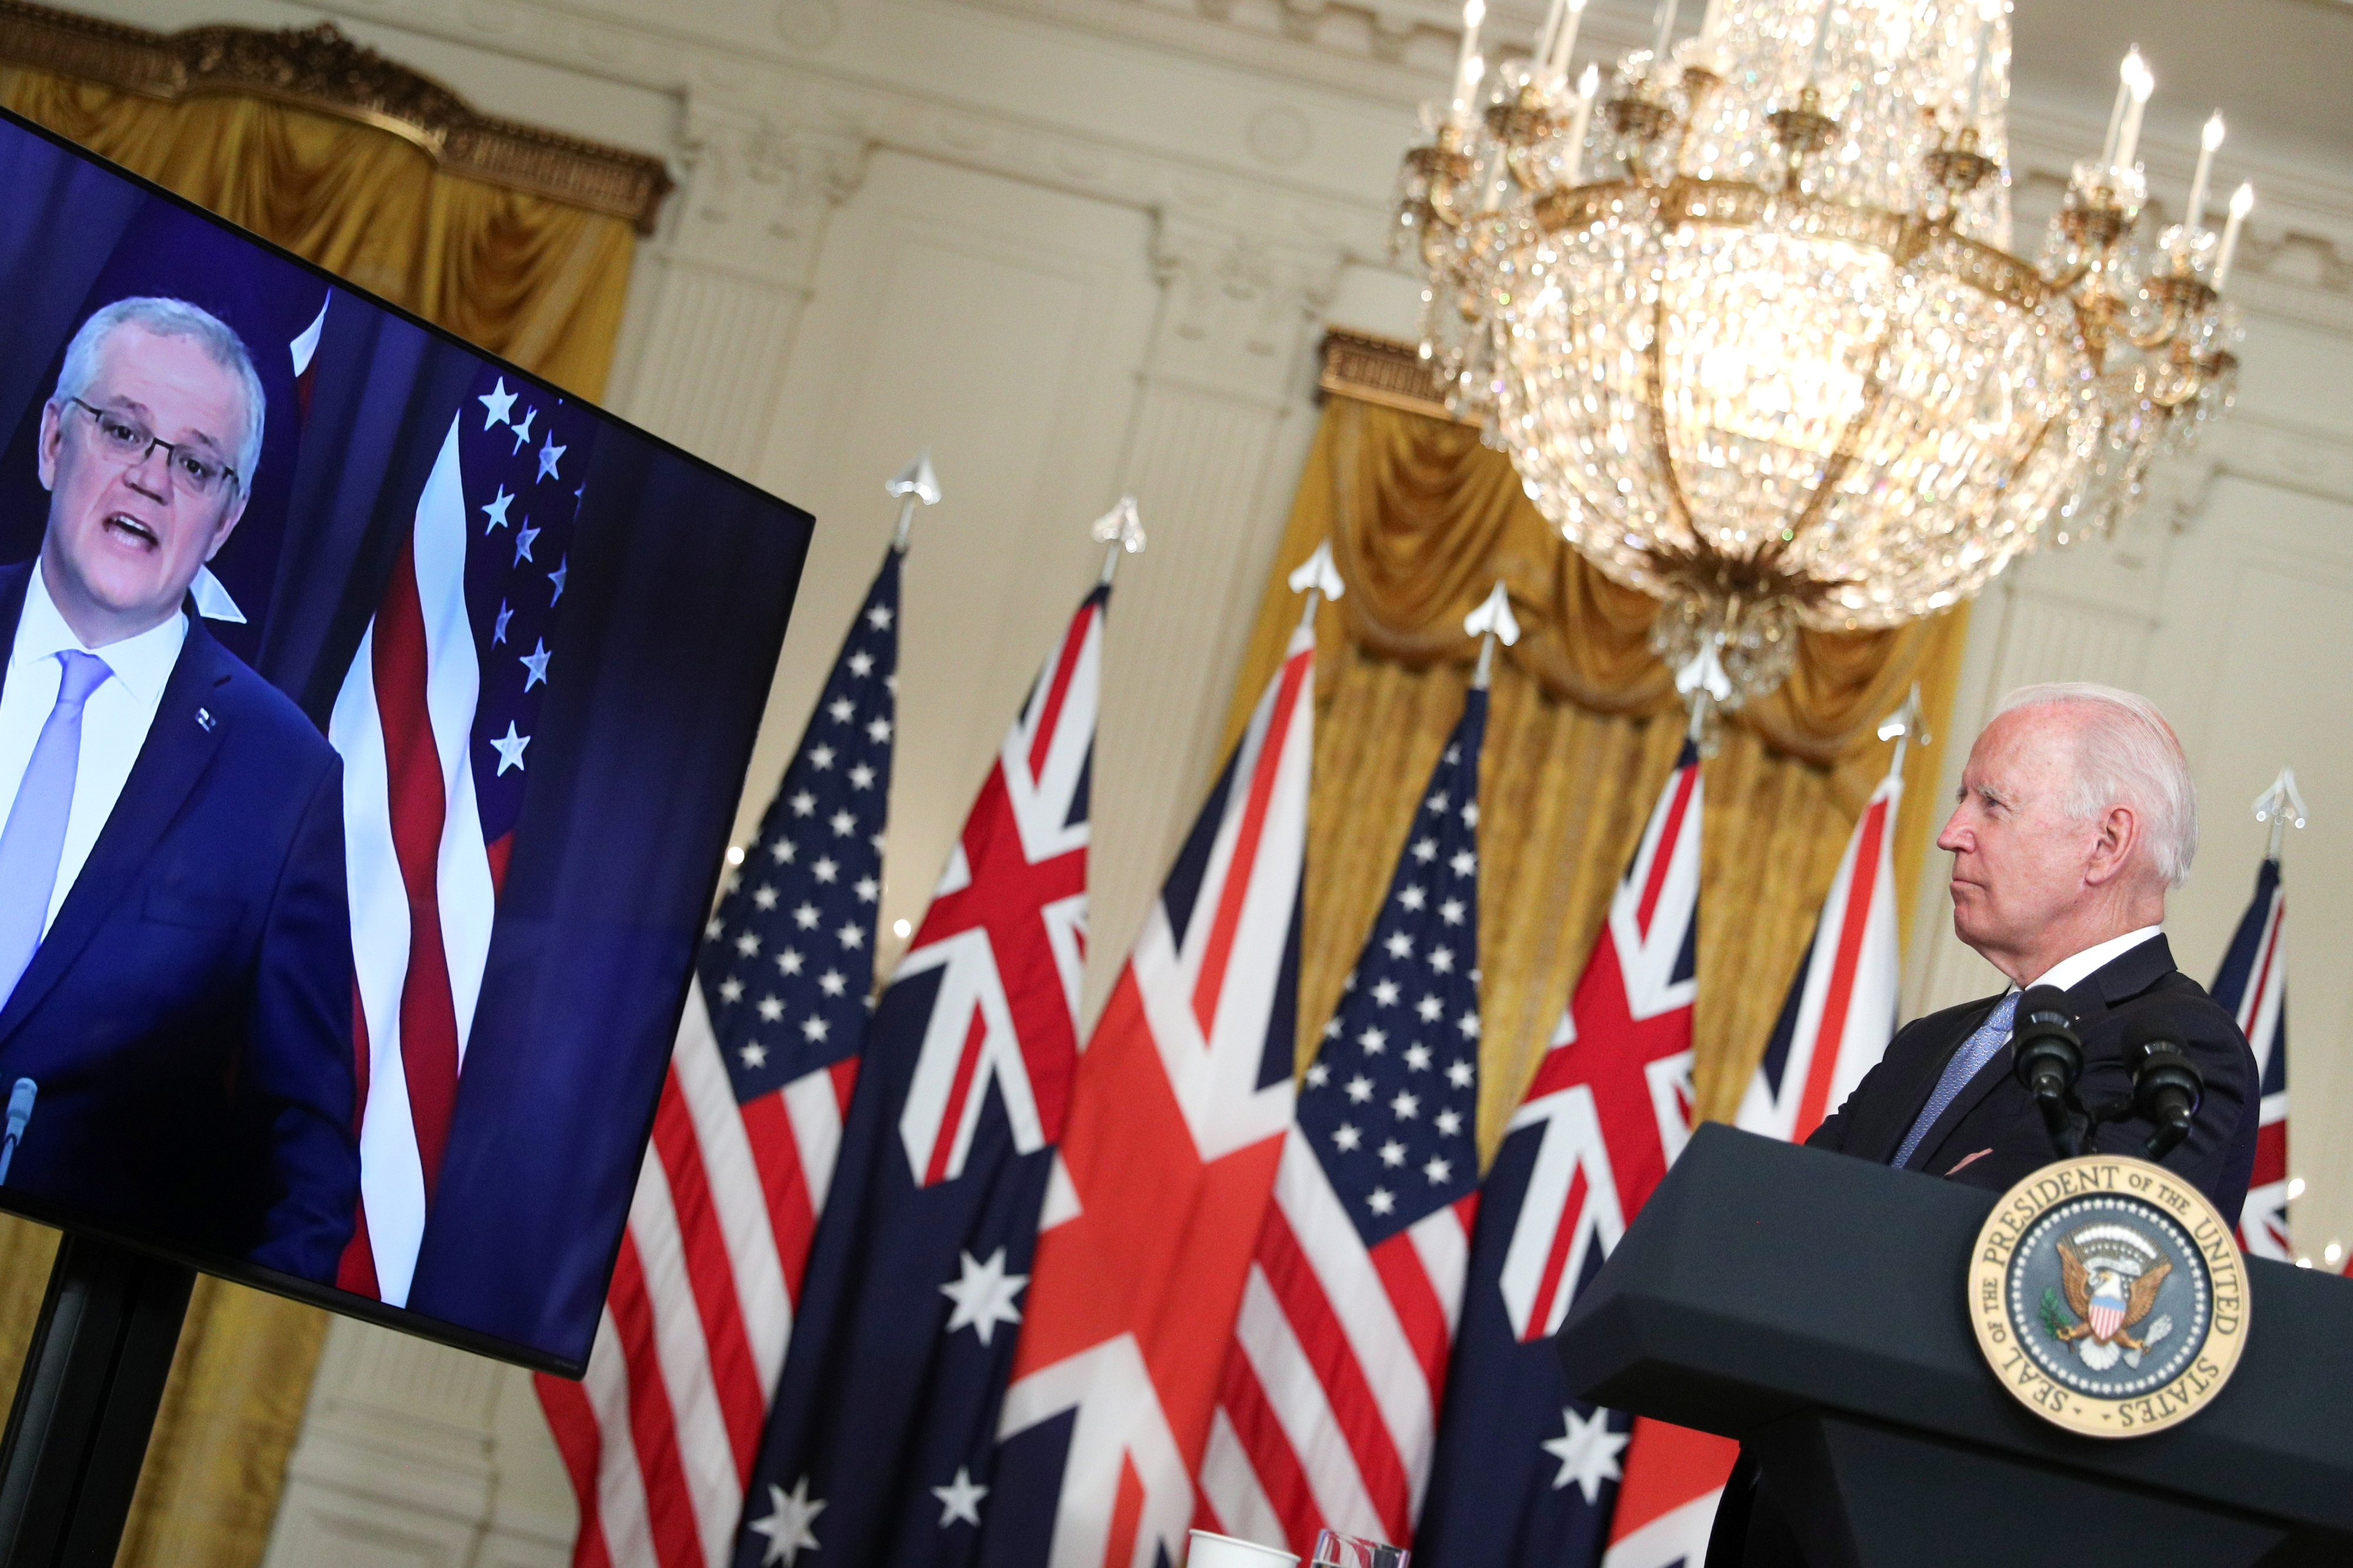 U.S. President Joe Biden delivers remarks on a National Security Initiative virtually with Australian Prime Minister Scott Morrison and British Prime Minister Boris Johnson, not pictured, inside the East Room at the White House in Washington, U.S., September 15, 2021.  REUTERS/Tom Brenner